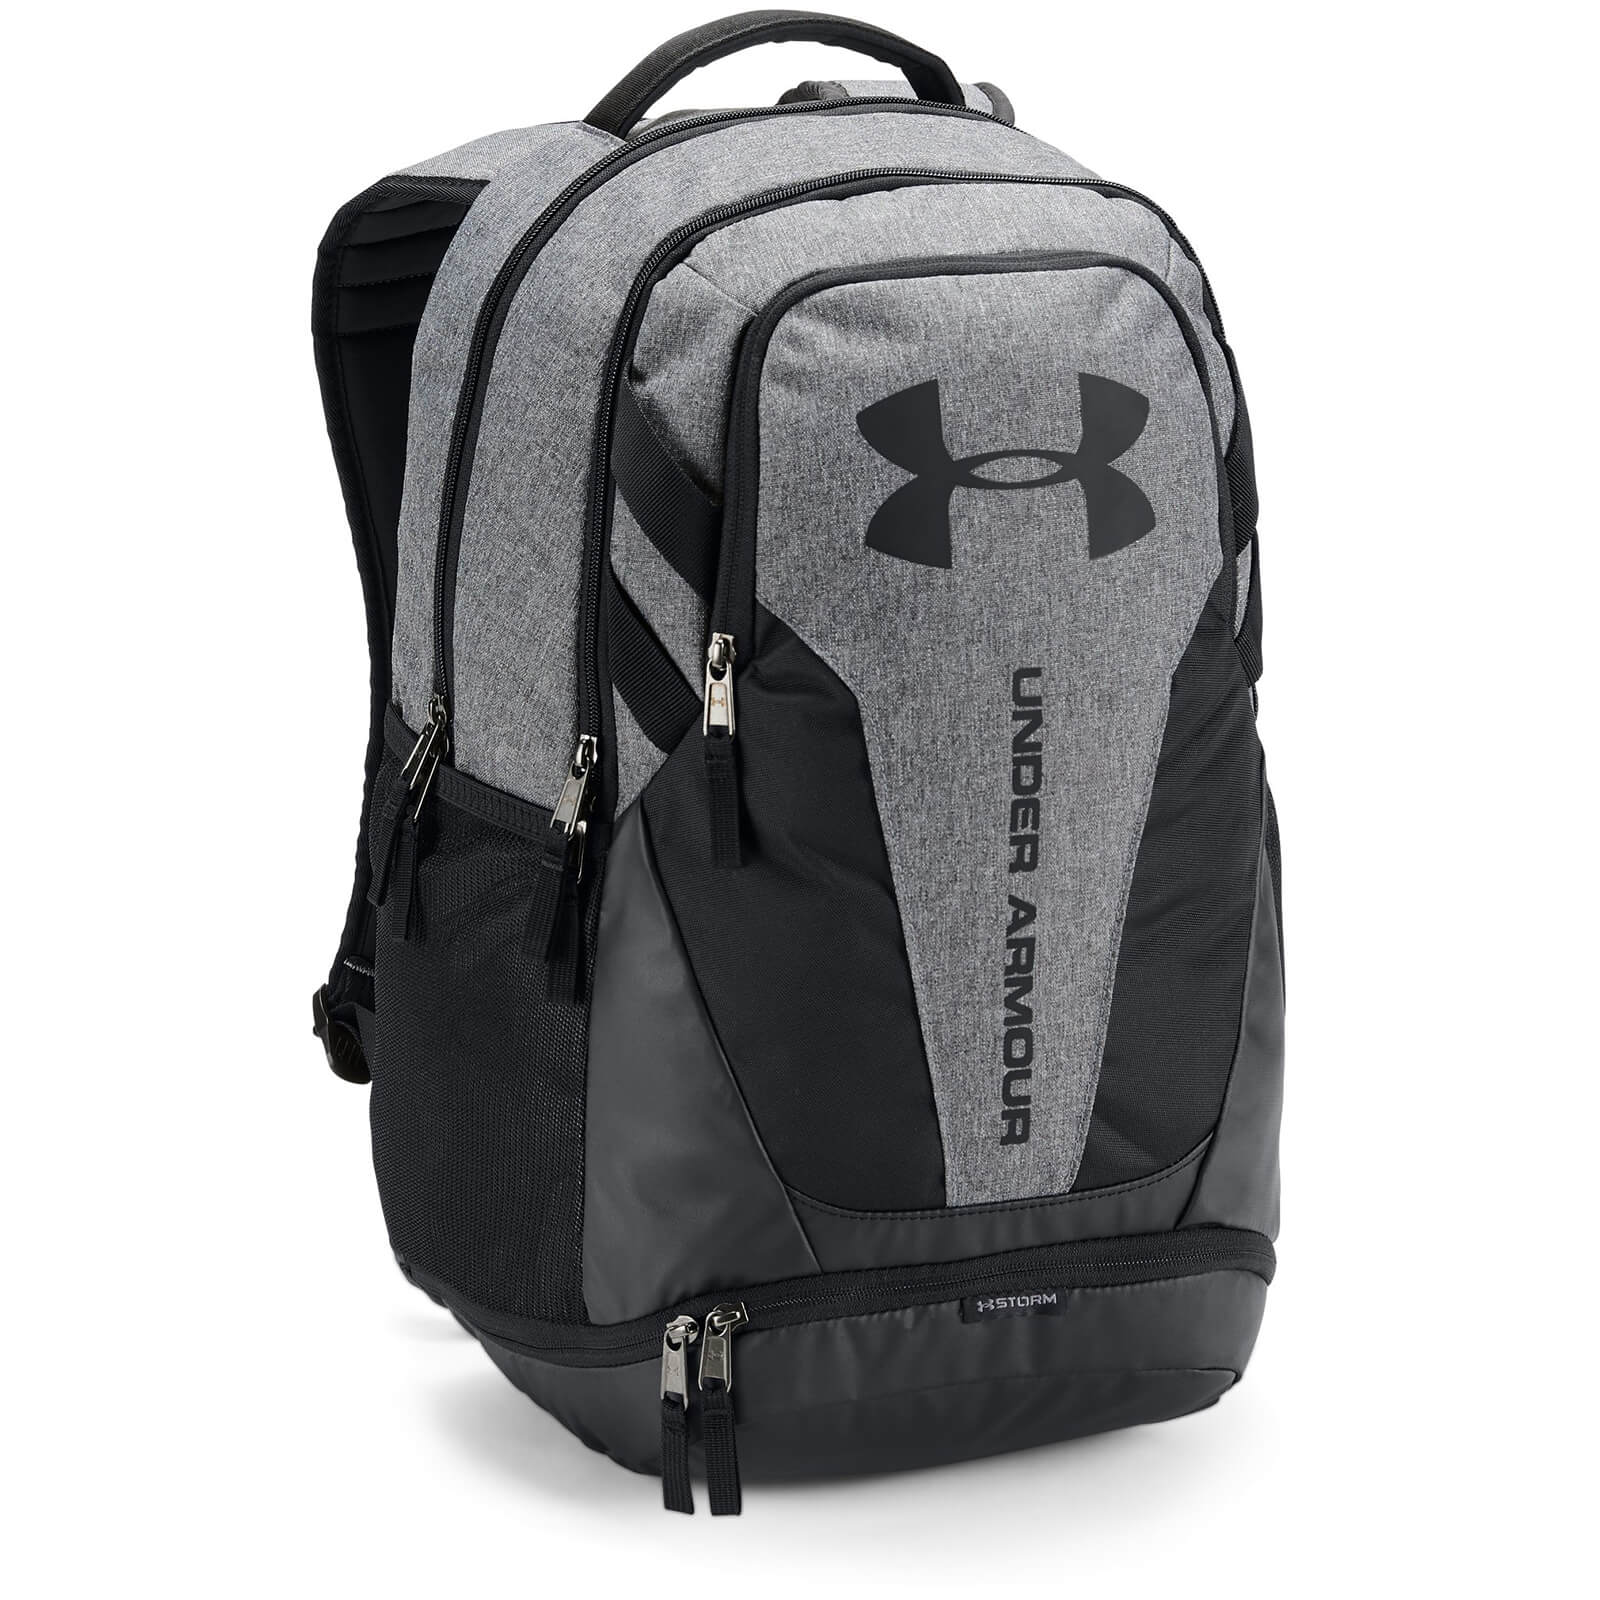 Under Armour Hustle 3.0 Backpack - Grey